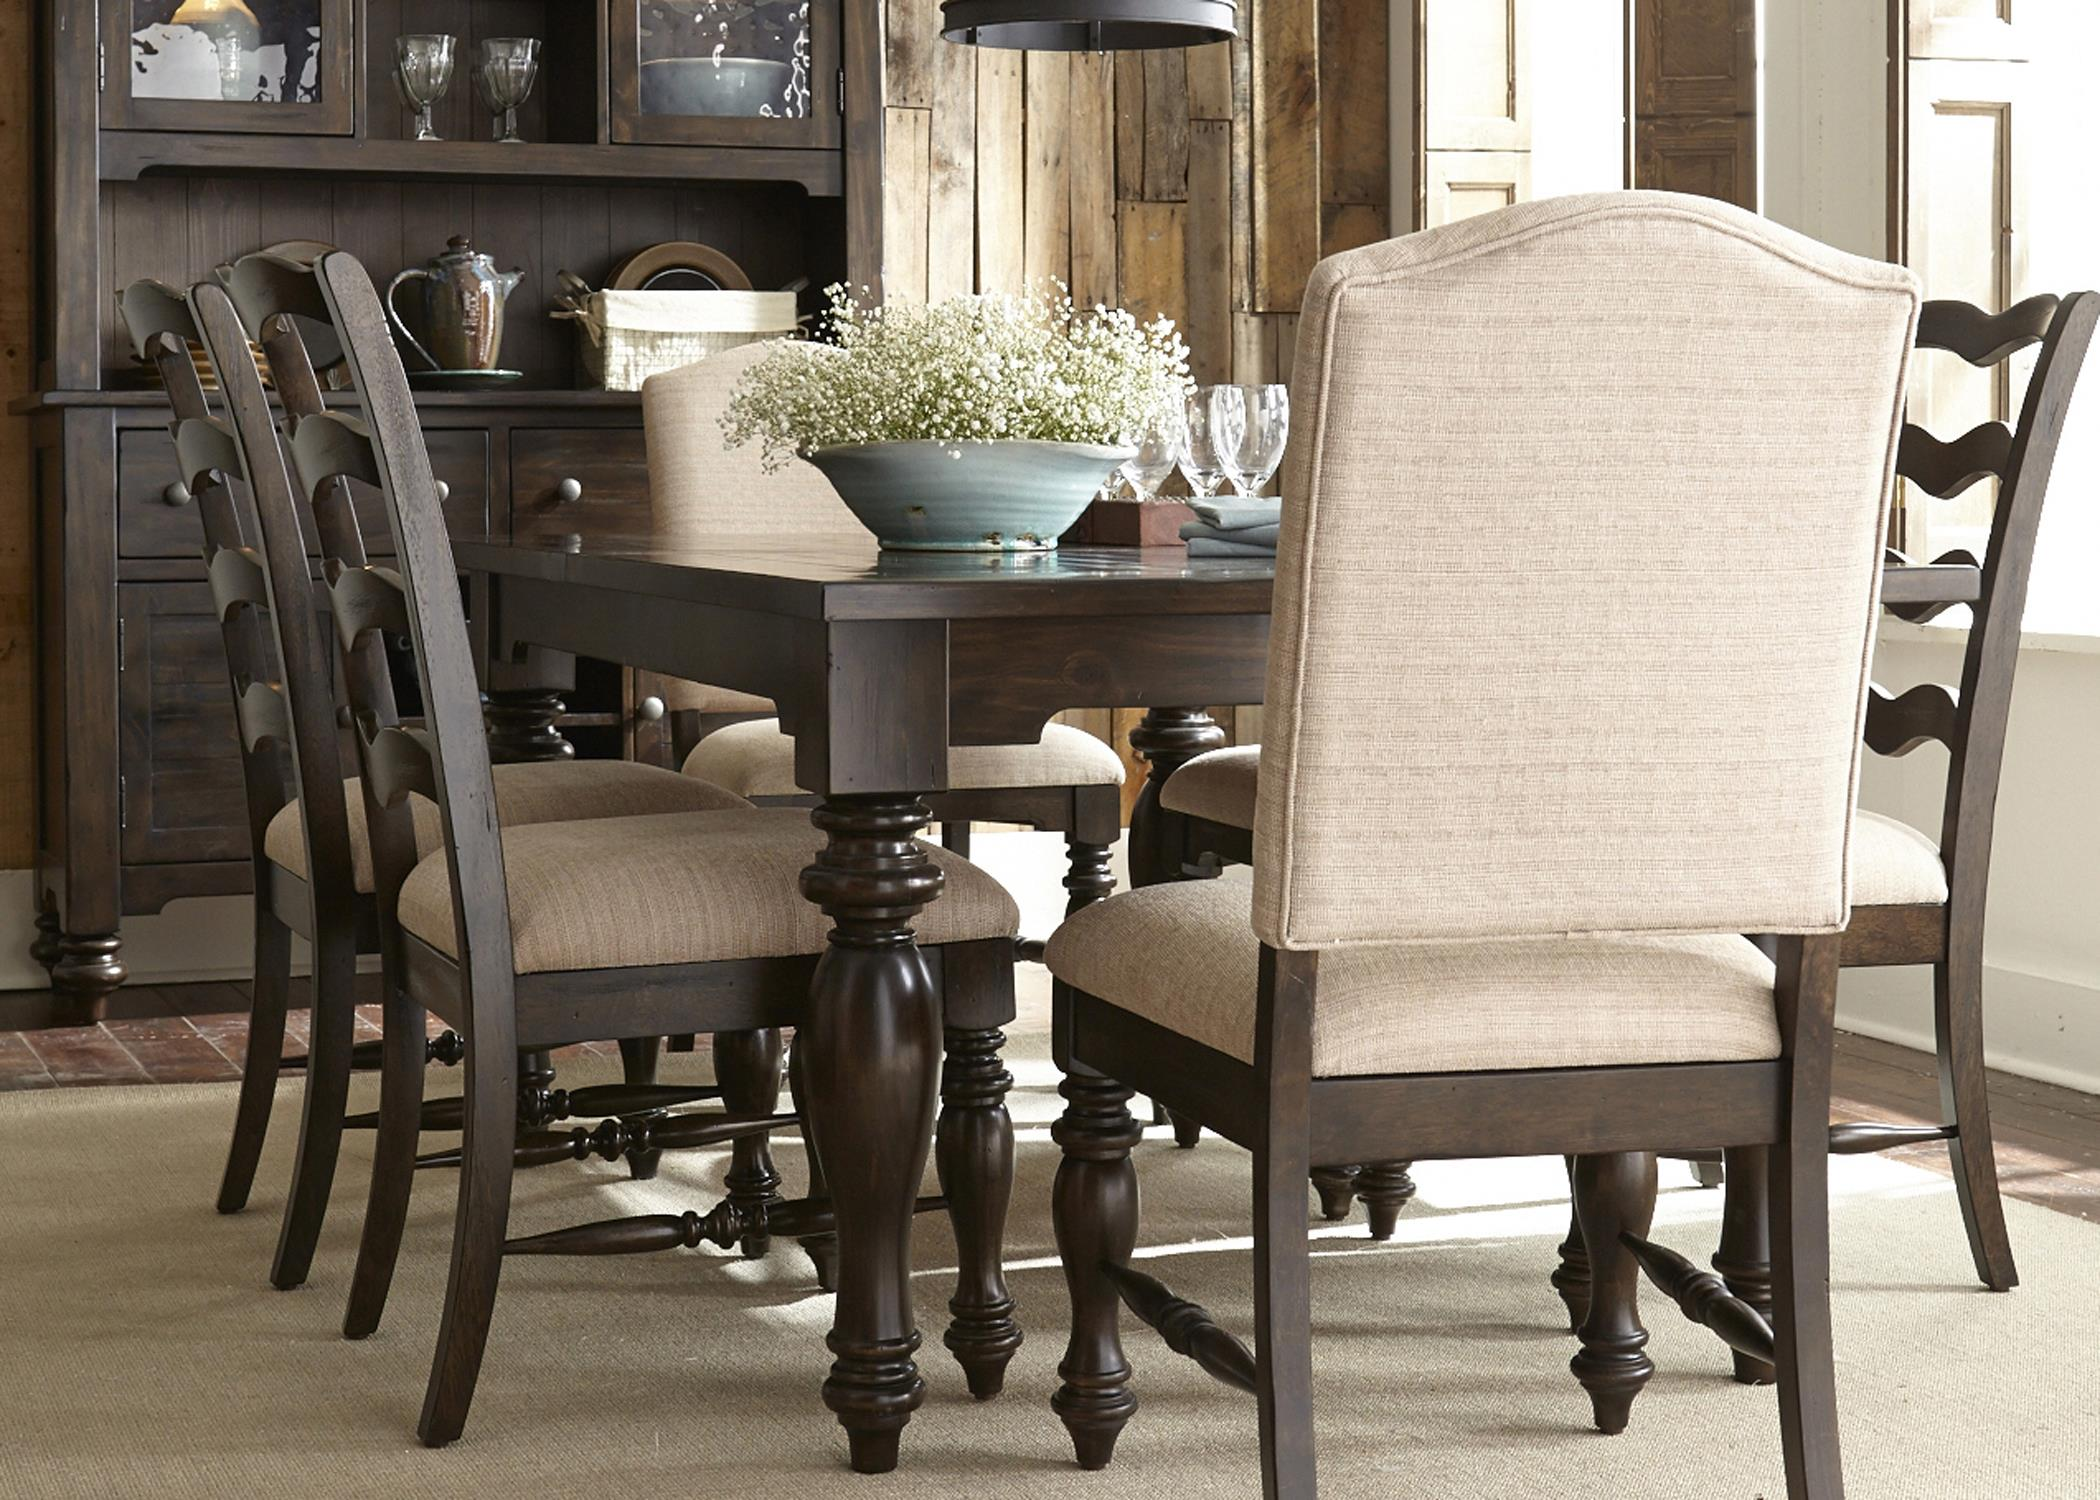 upholstered dining chair style